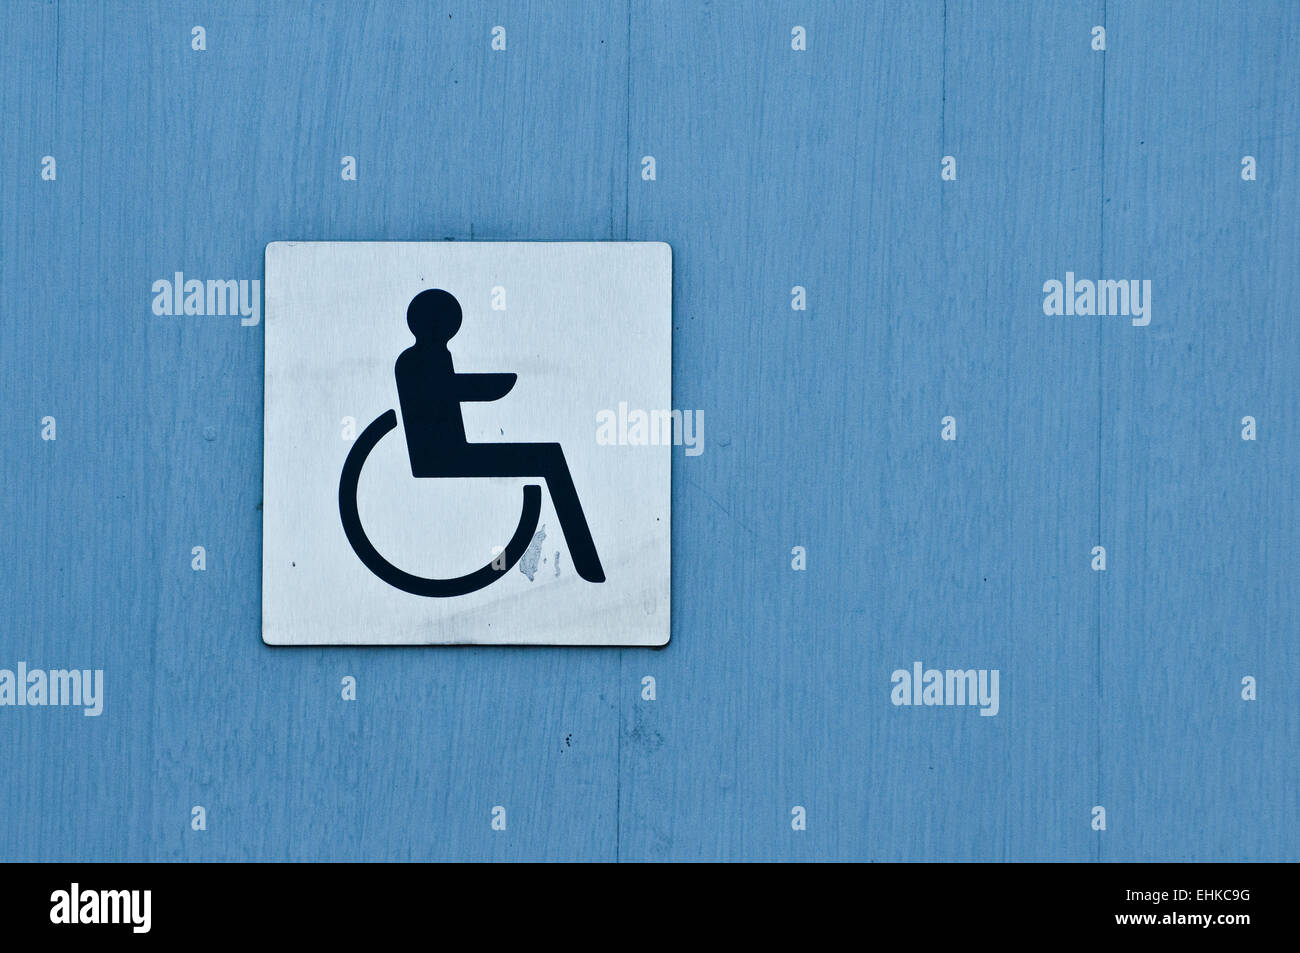 Cartello Da Appendere In Bagno : Disabled toilet sign immagini disabled toilet sign fotos stock